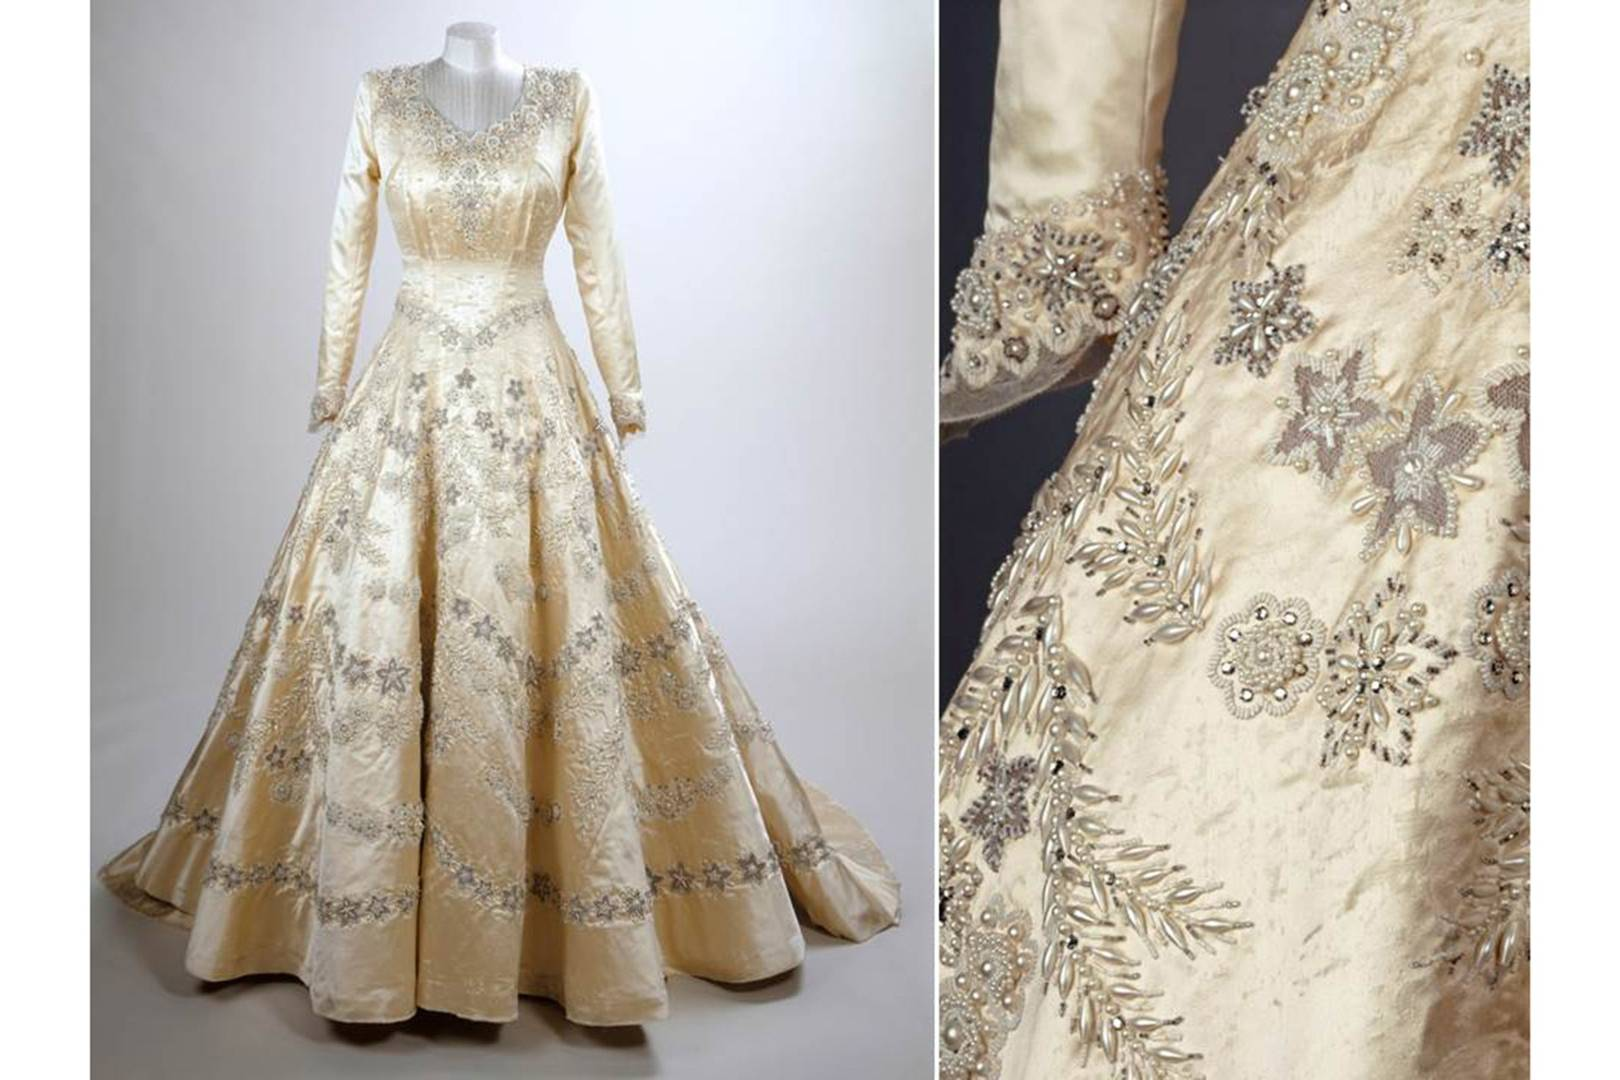 The Queens Wedding Dress Fashion History Costume Trends - satukis.info